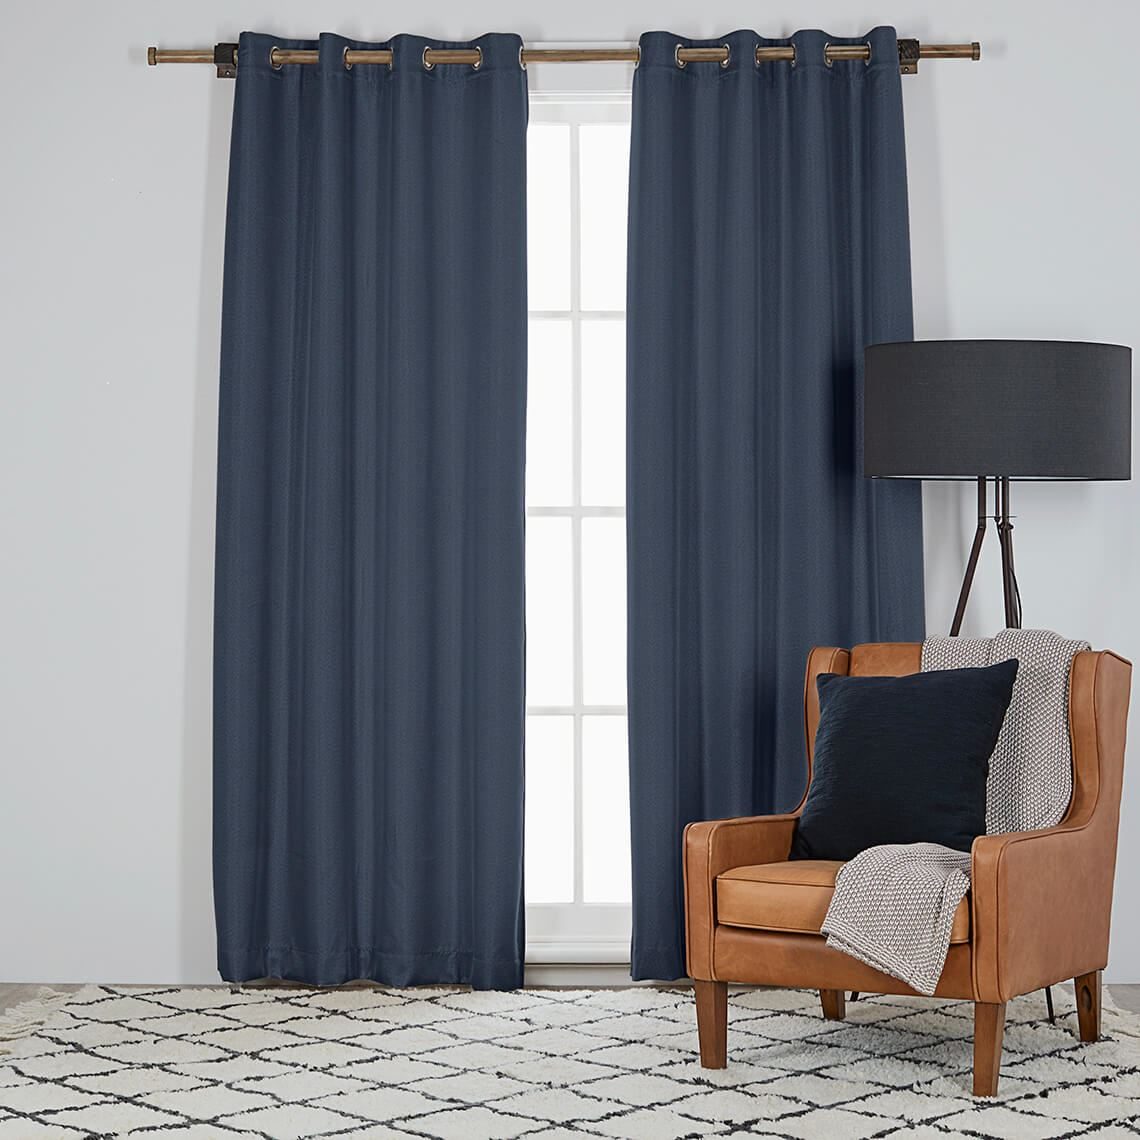 Harrison Room Darkening Eyelet Curtain Size W 135cm x D 0cm x H 230cm in Indigo 100% Polyester Freedom by Freedom, a Curtains for sale on Style Sourcebook